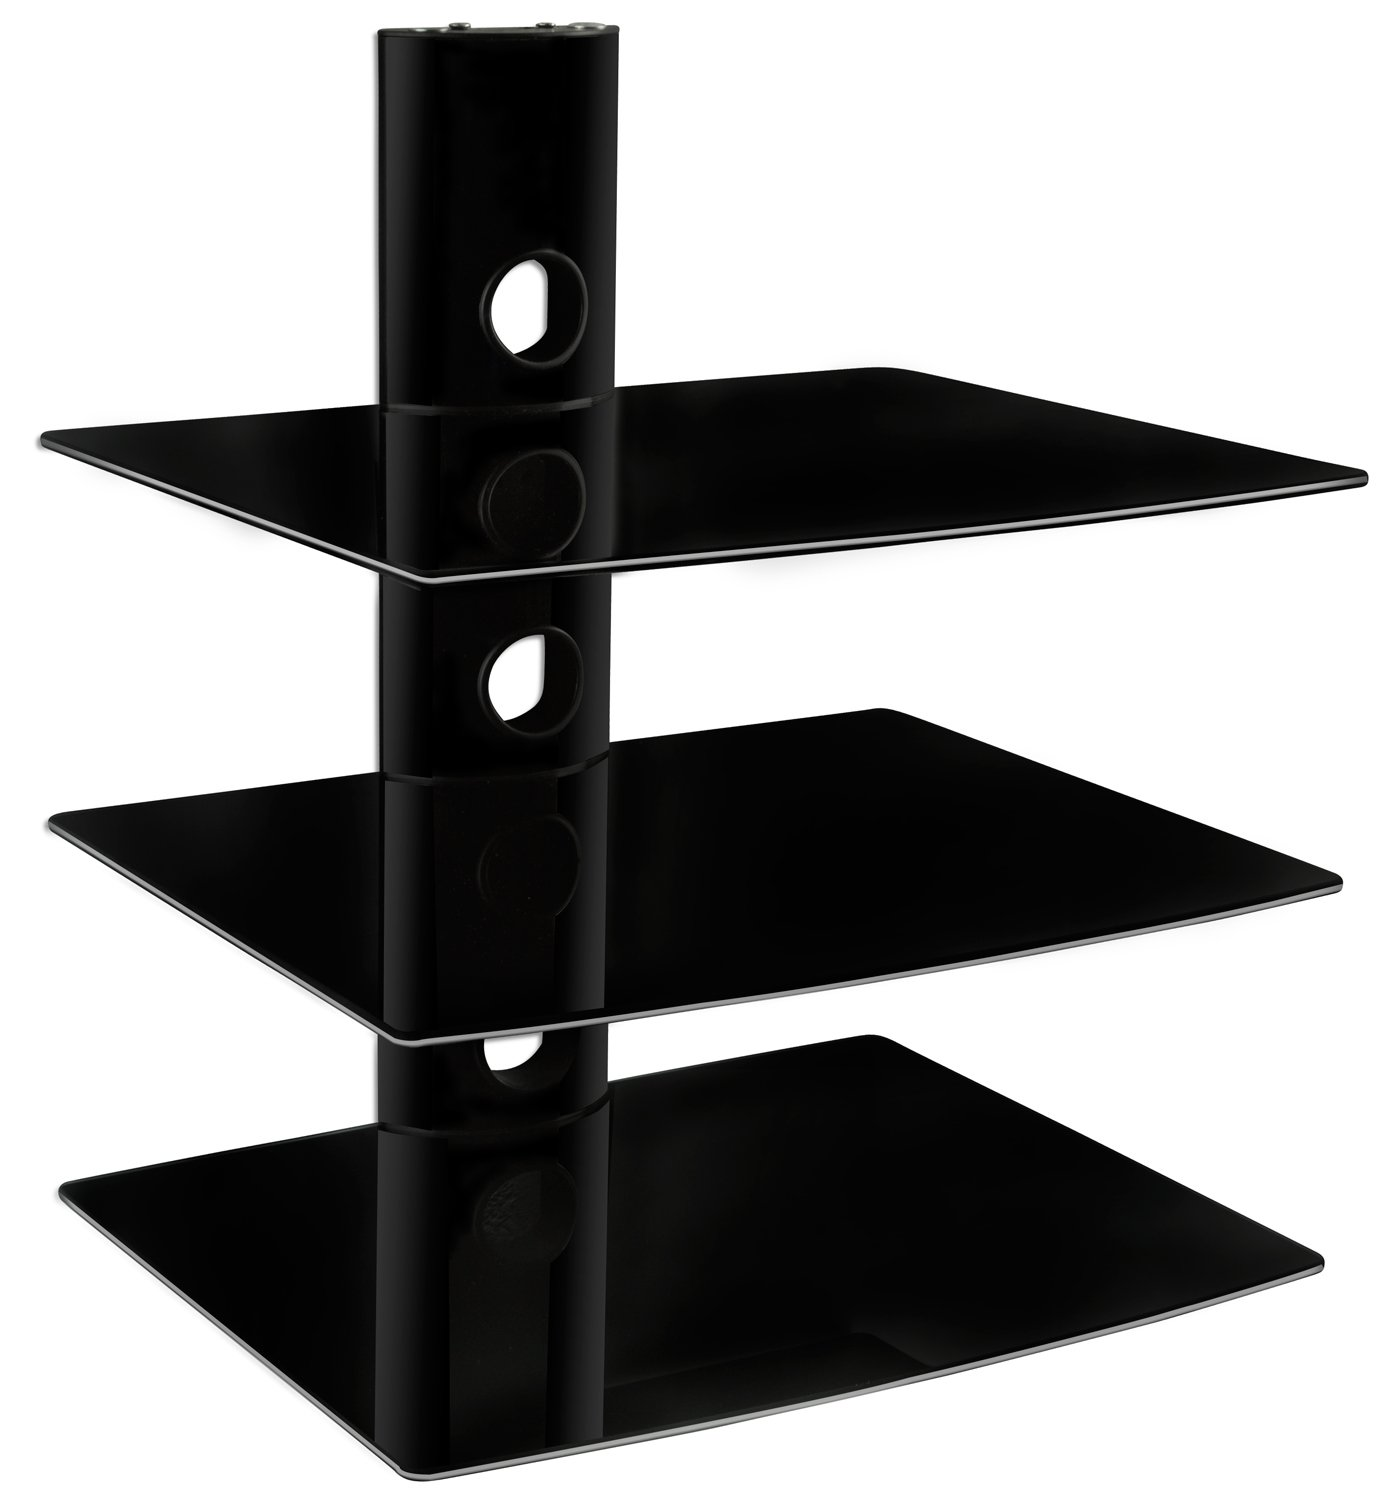 electronics shelf satellite vonhaus dp glass shelves black amazon brackets uk mount co bracket floating